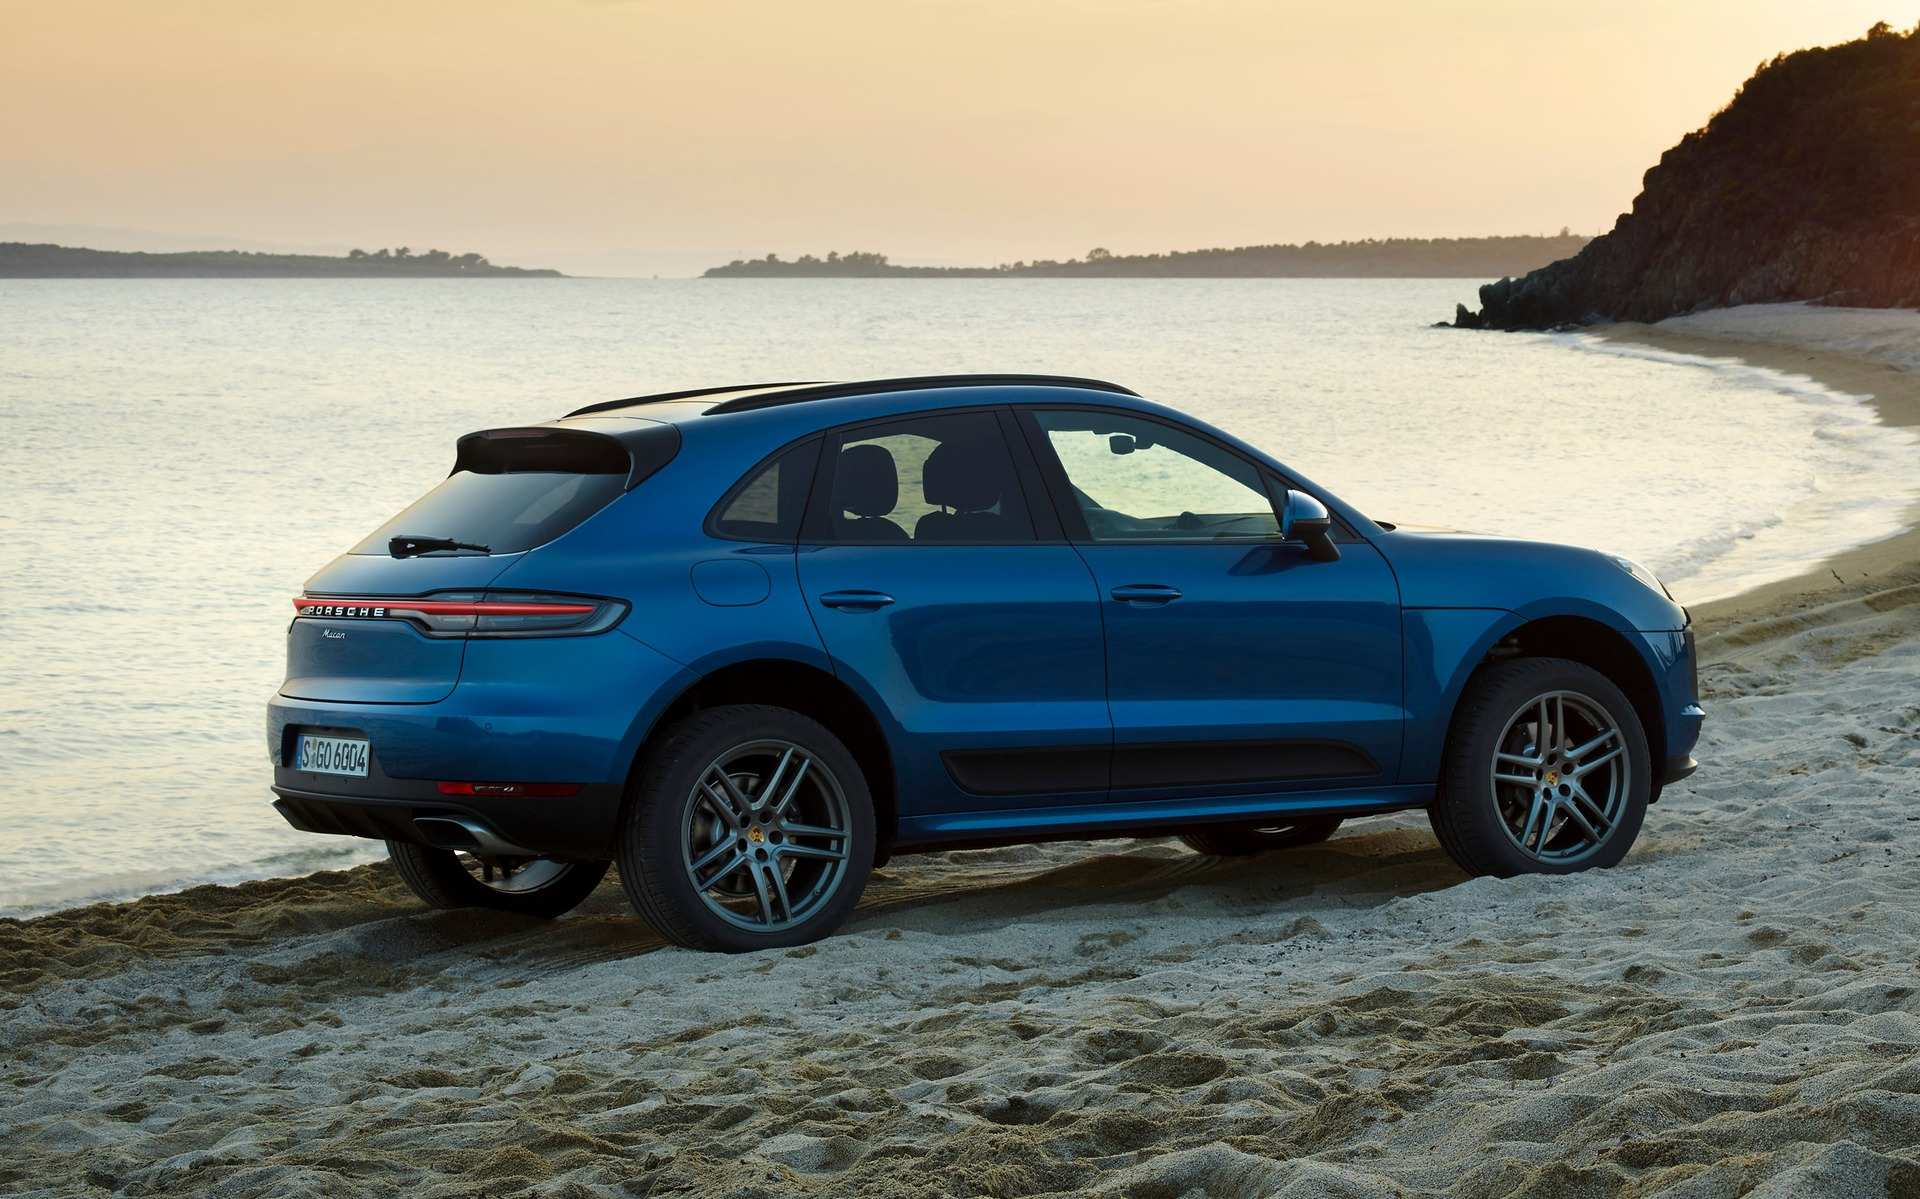 17 Great 2019 Porsche Macan Specs and Review by 2019 Porsche Macan